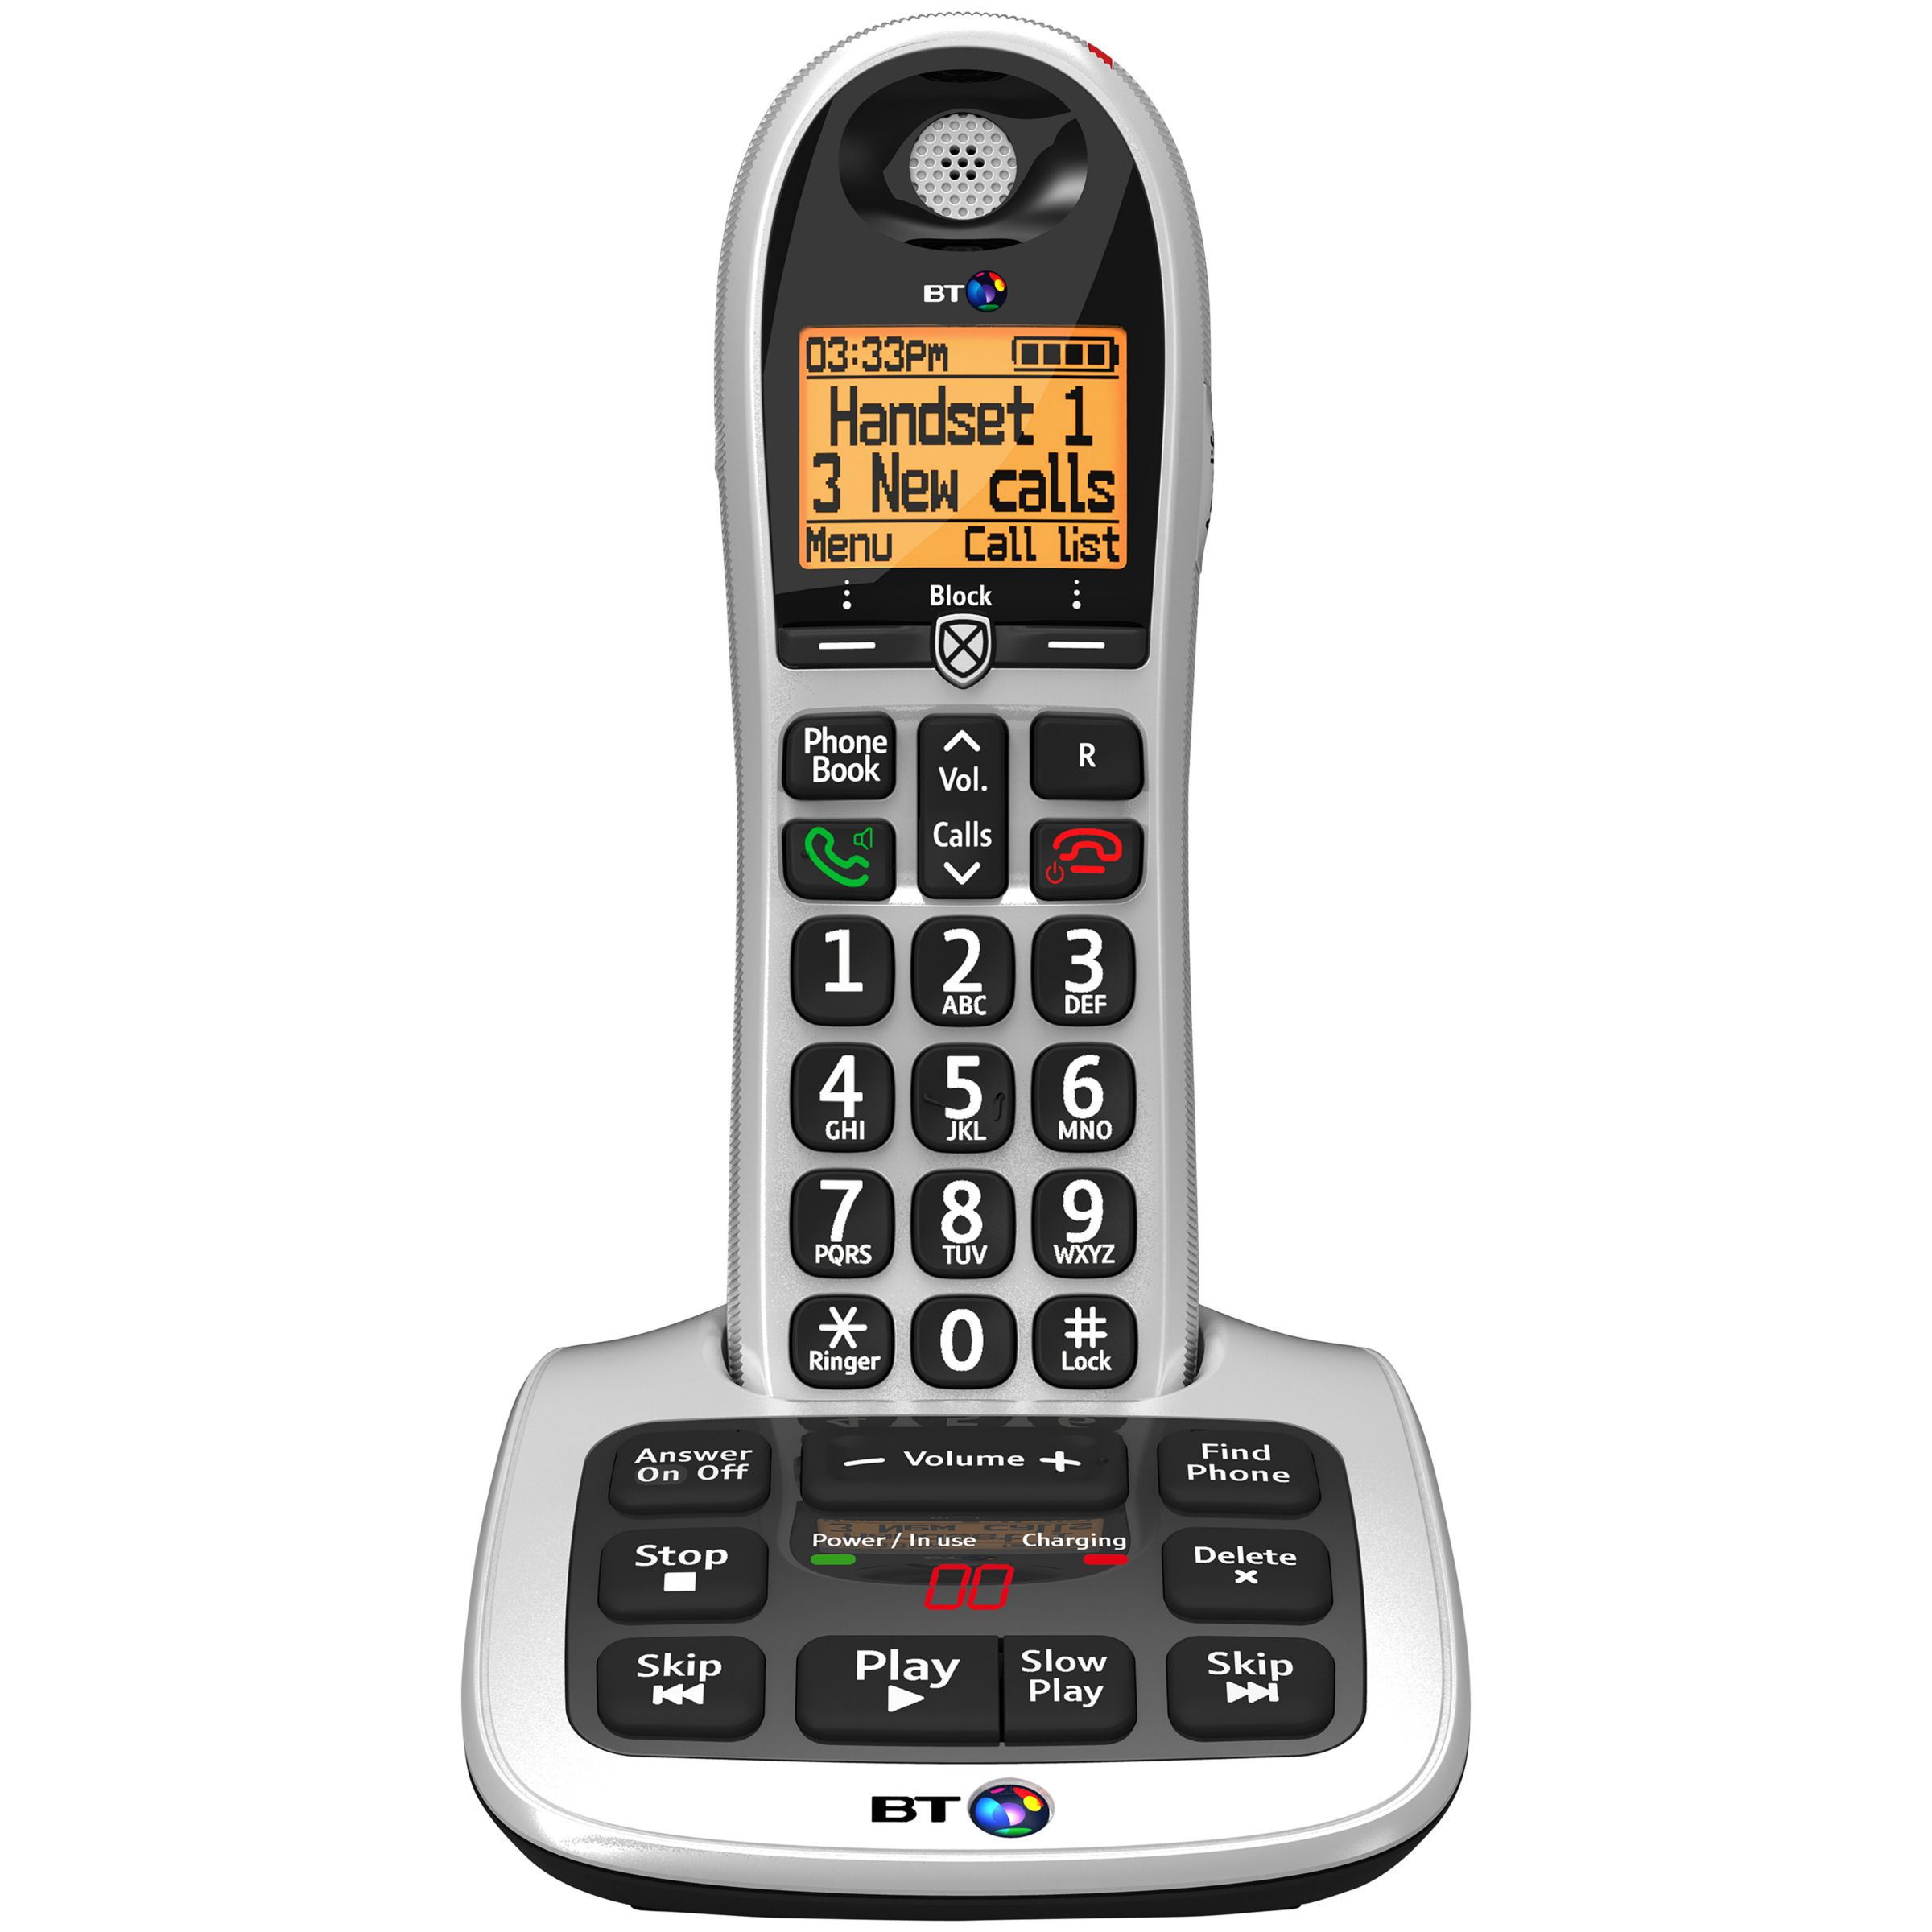 BT BT 4600 Big Button Digital Cordless Phone With Advanced Call Blocking & Answering Machine, Single DECT